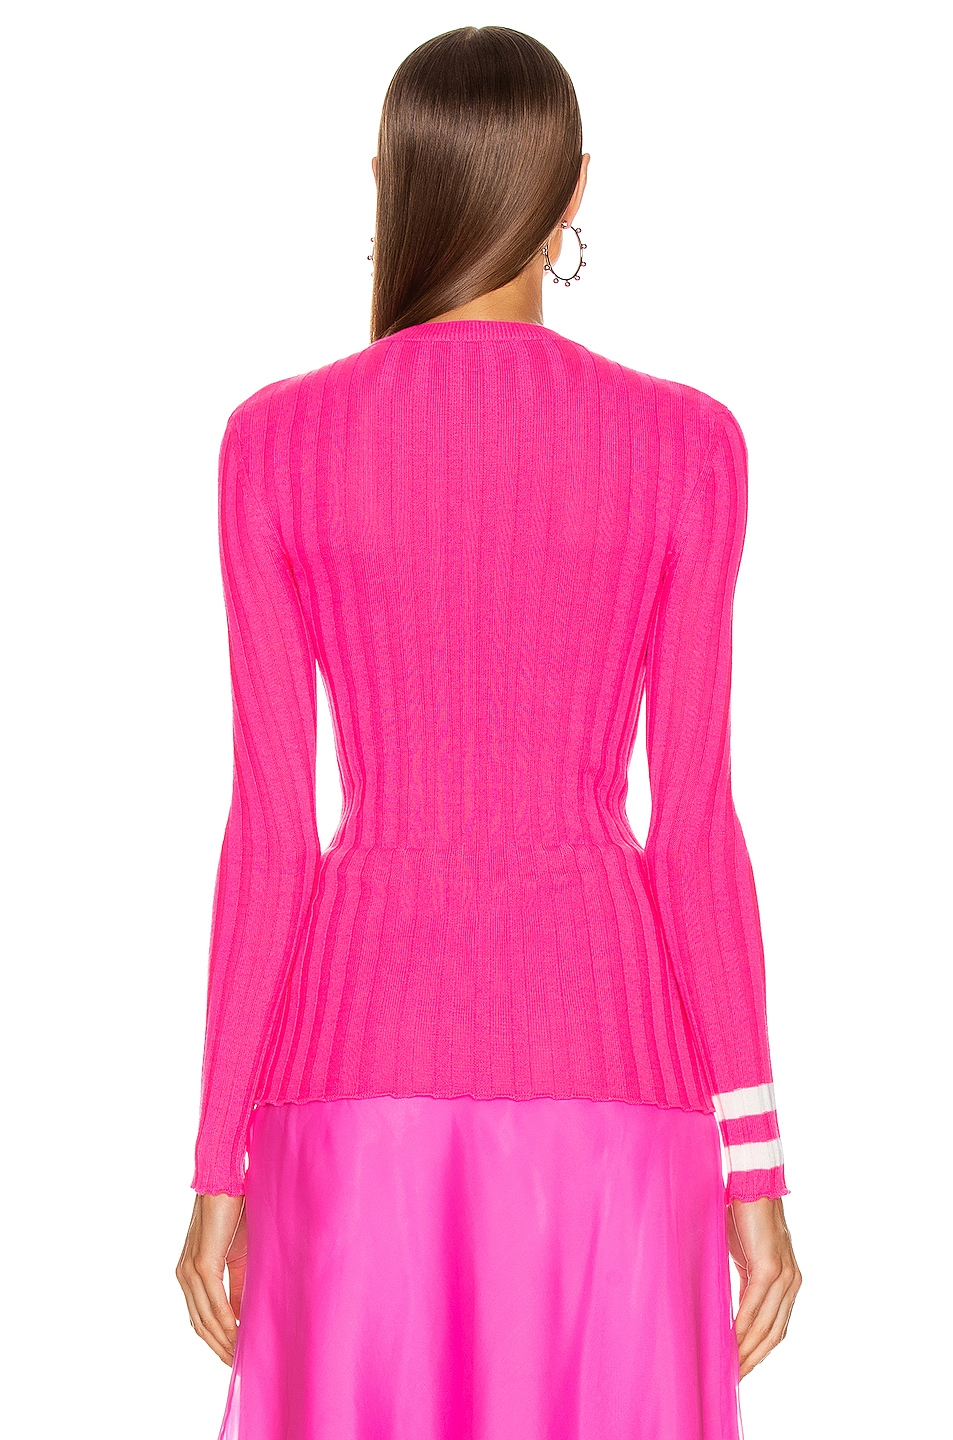 Image 3 of Maggie Marilyn Hole Lot of Loving Sweater in Fluro Pink & Ivory